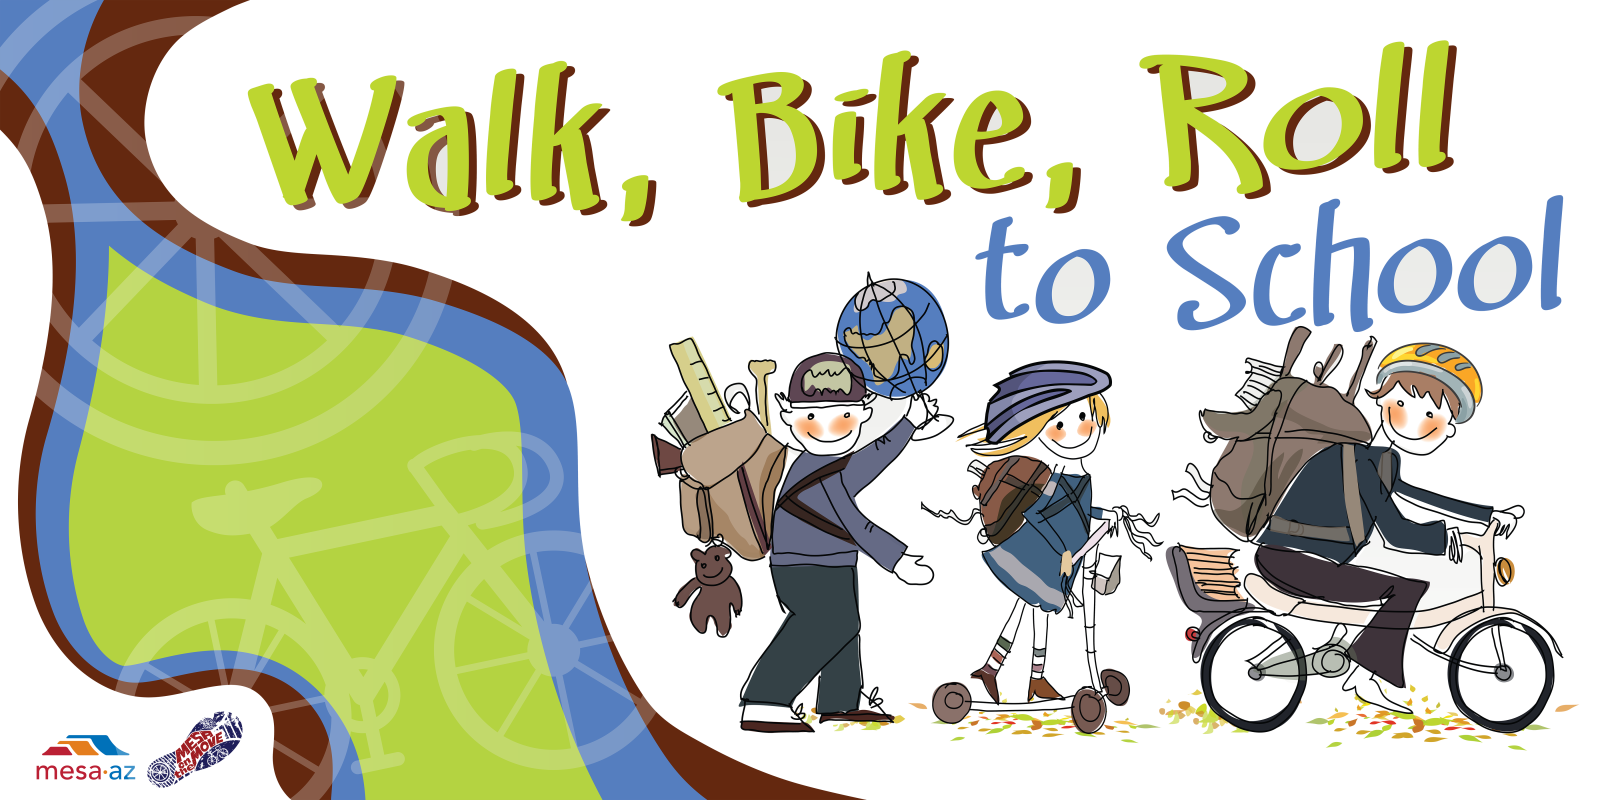 Walk_Bike2School Graphic